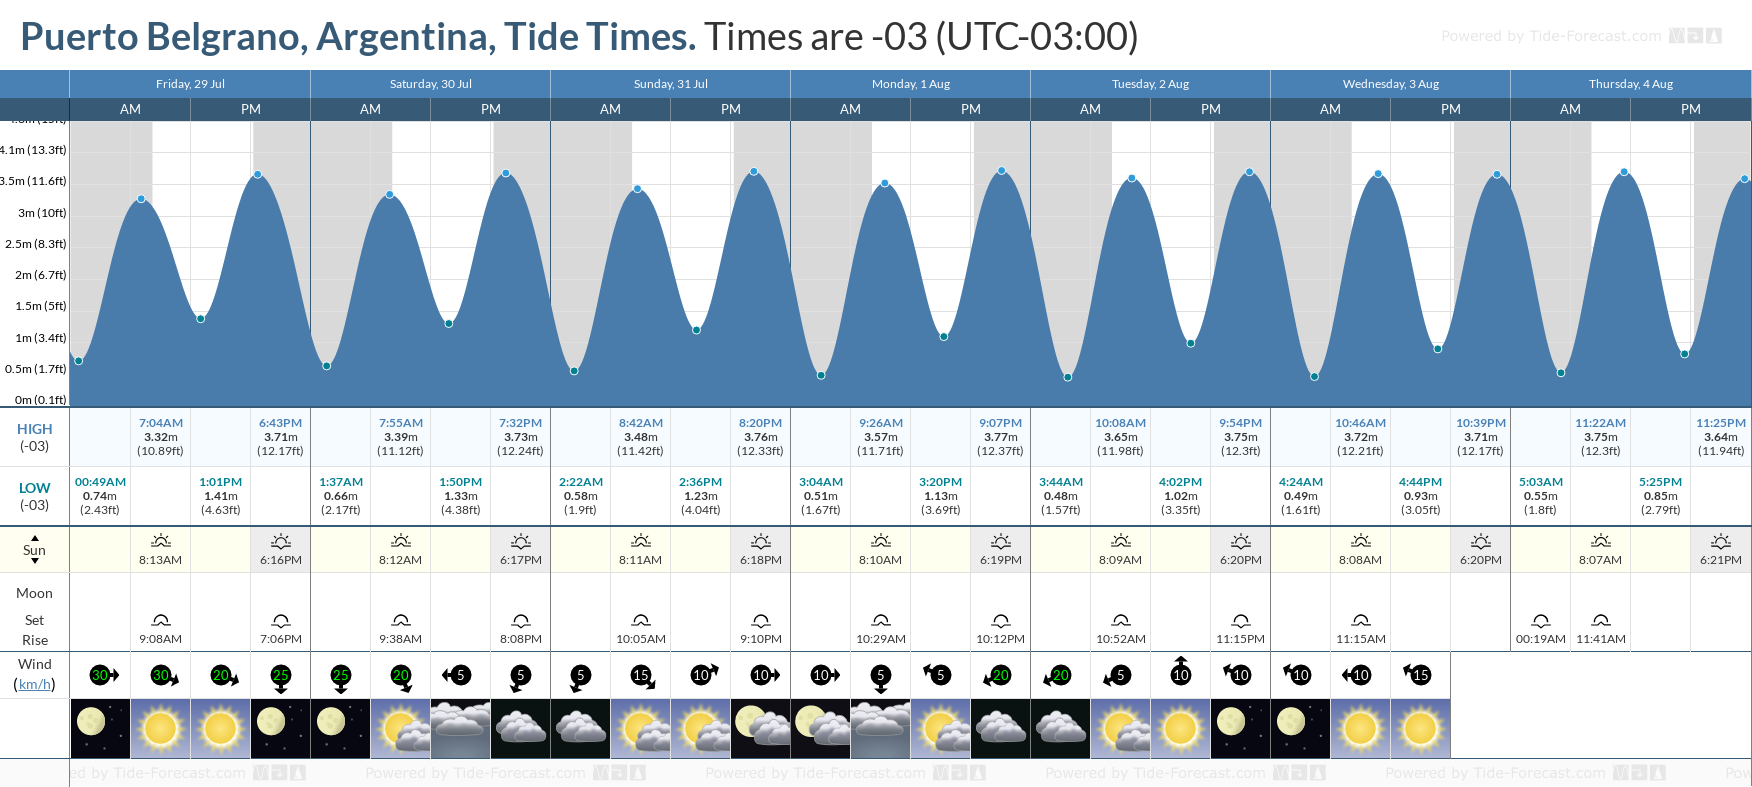 Puerto Belgrano, Argentina Tide Chart including high and low tide tide times for the next 7 days